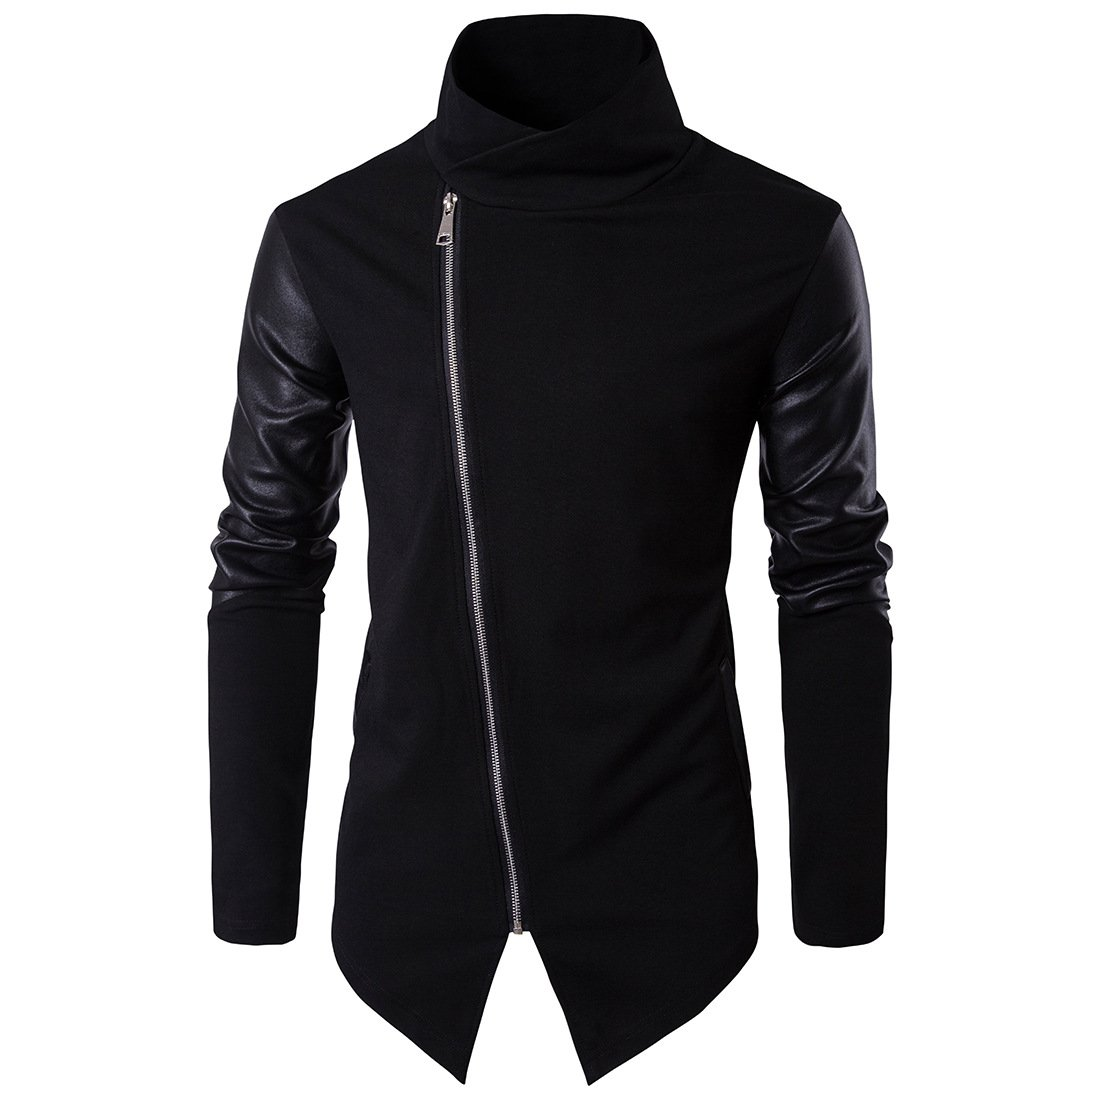 Tristin Men's Casual Jacket Zip Up Lightweight Turtleneck Asymmetrical Cotton Leather Long Sleeve Outwear Coat, Black, Medium by Tristin